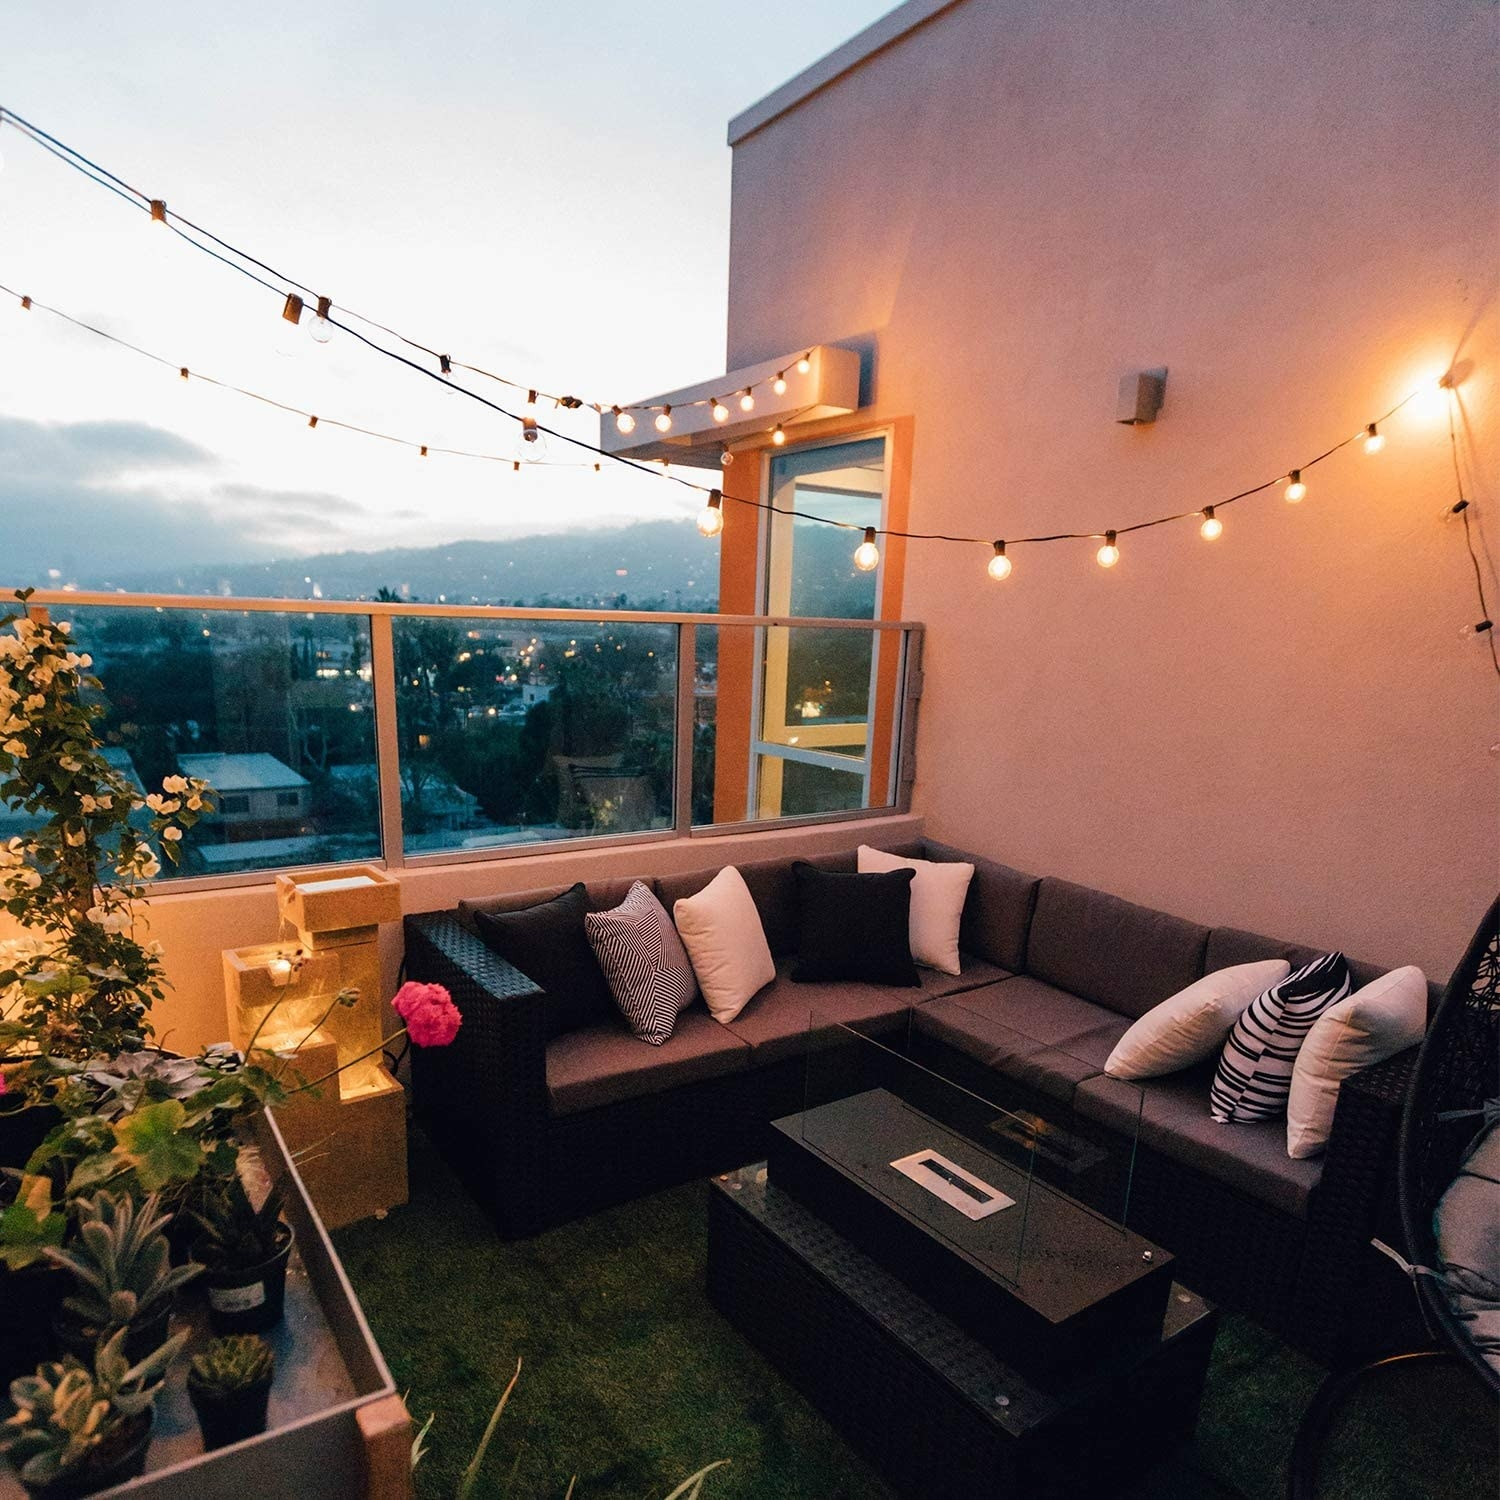 The string lights hung on someone's balcony